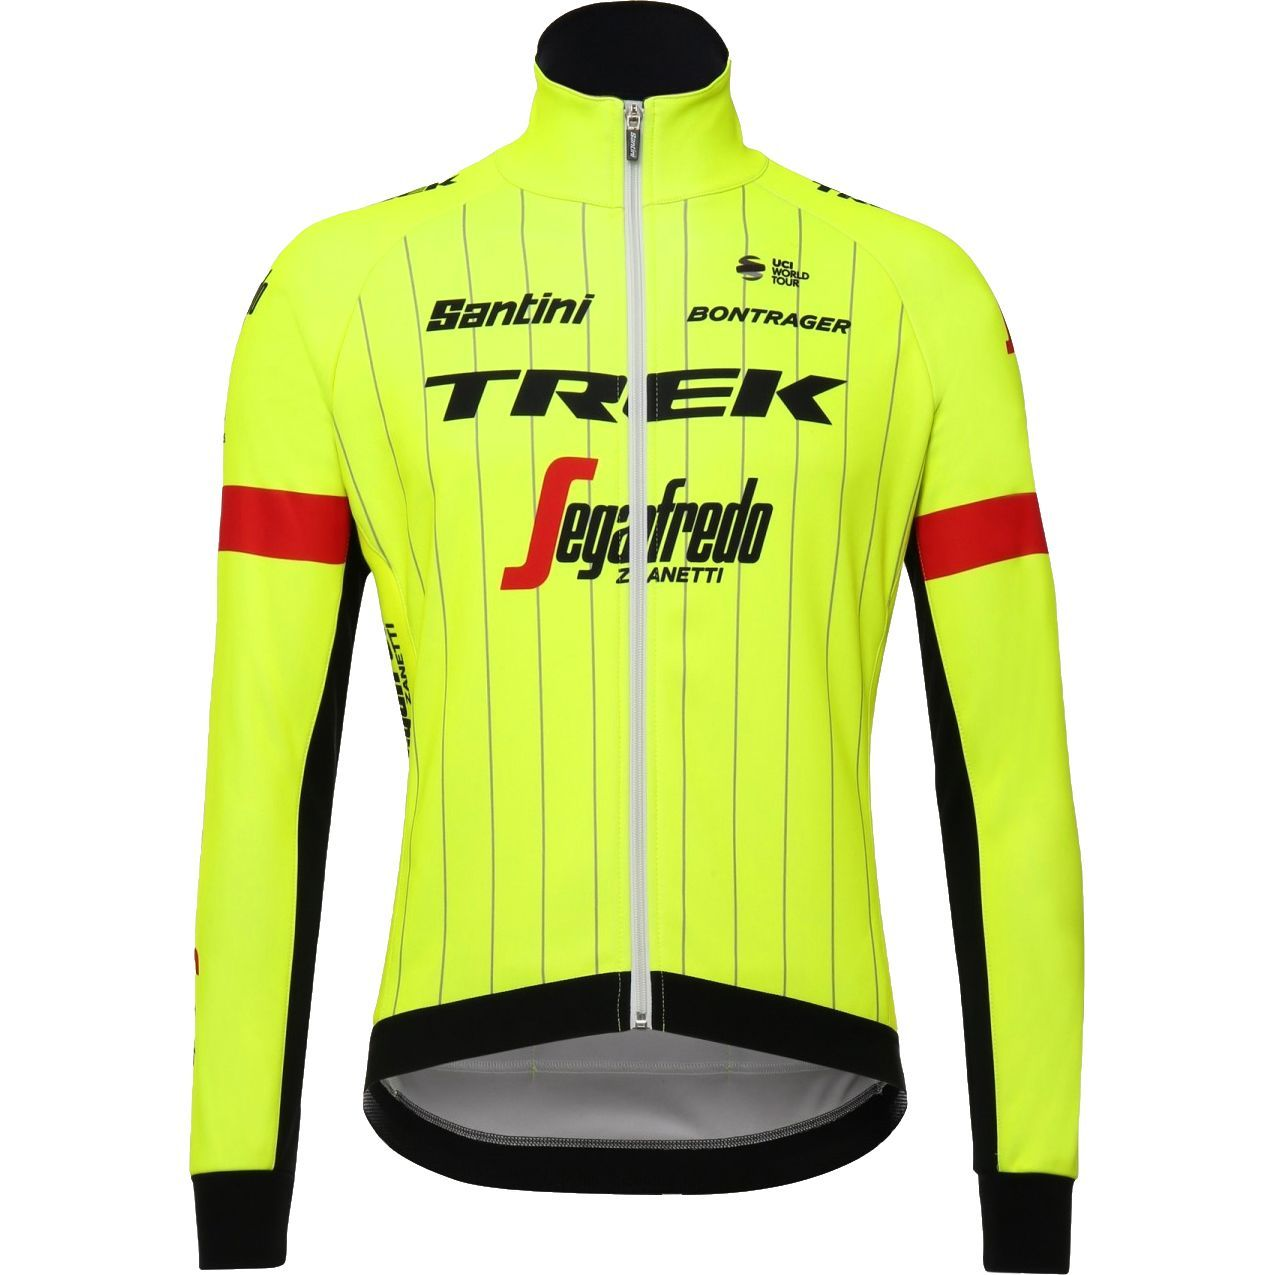 Previous. TREK - SEGAFREDO 2018 training edition winter cycling jacket -  Santini professional cycling team e0c2f53be